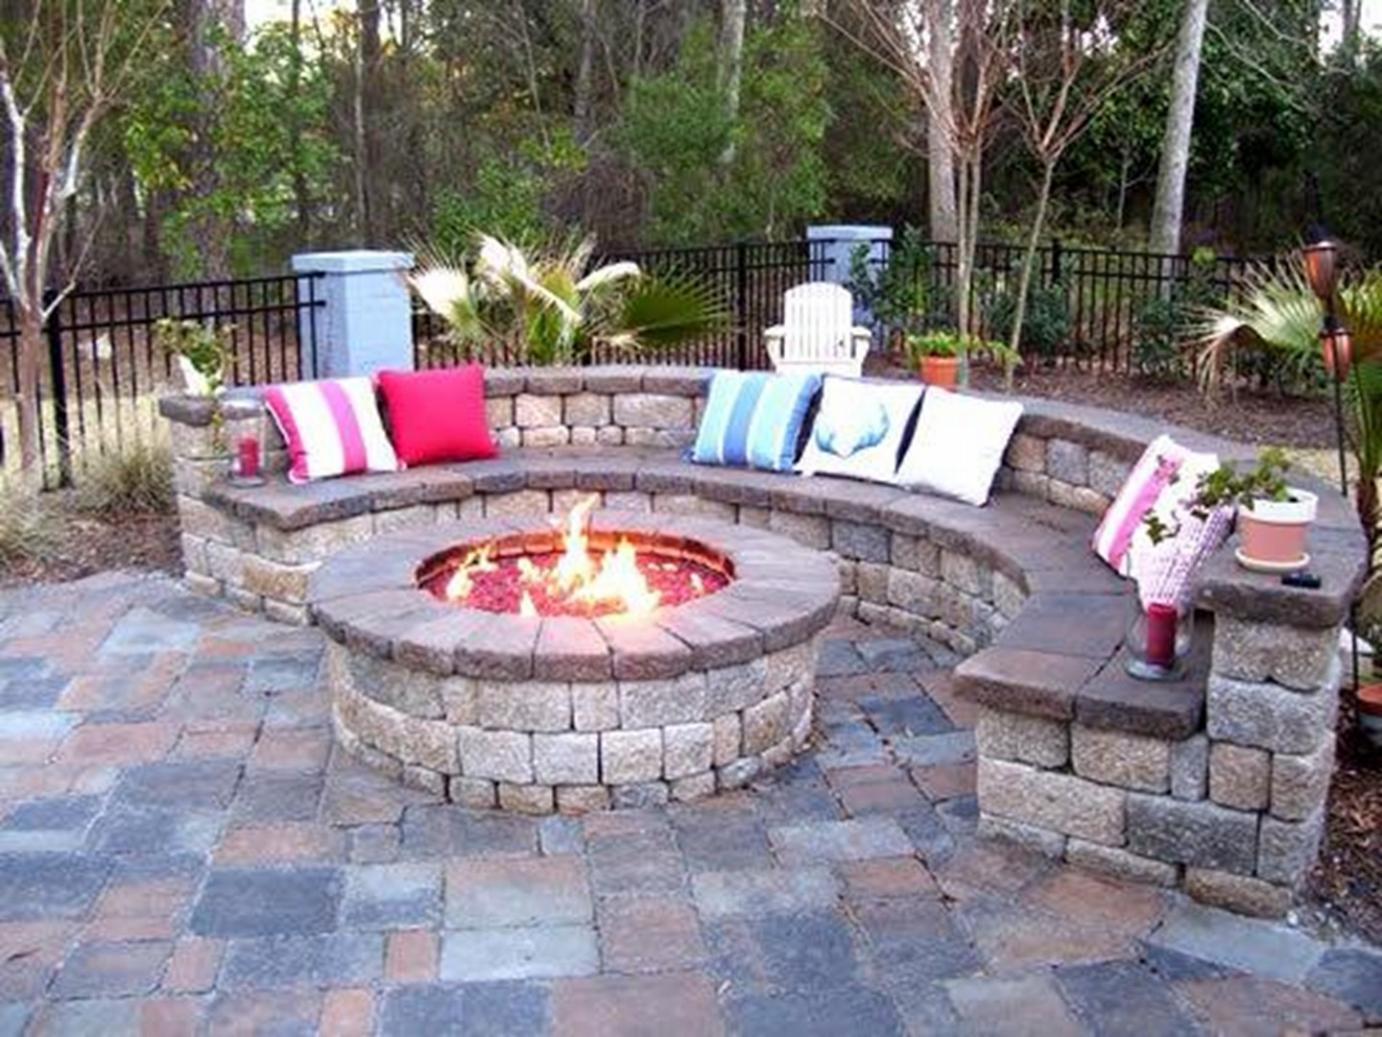 backyard fire pit landscaping ideas backyard fire pit ideas landscaping - Fire Pit Design Ideas